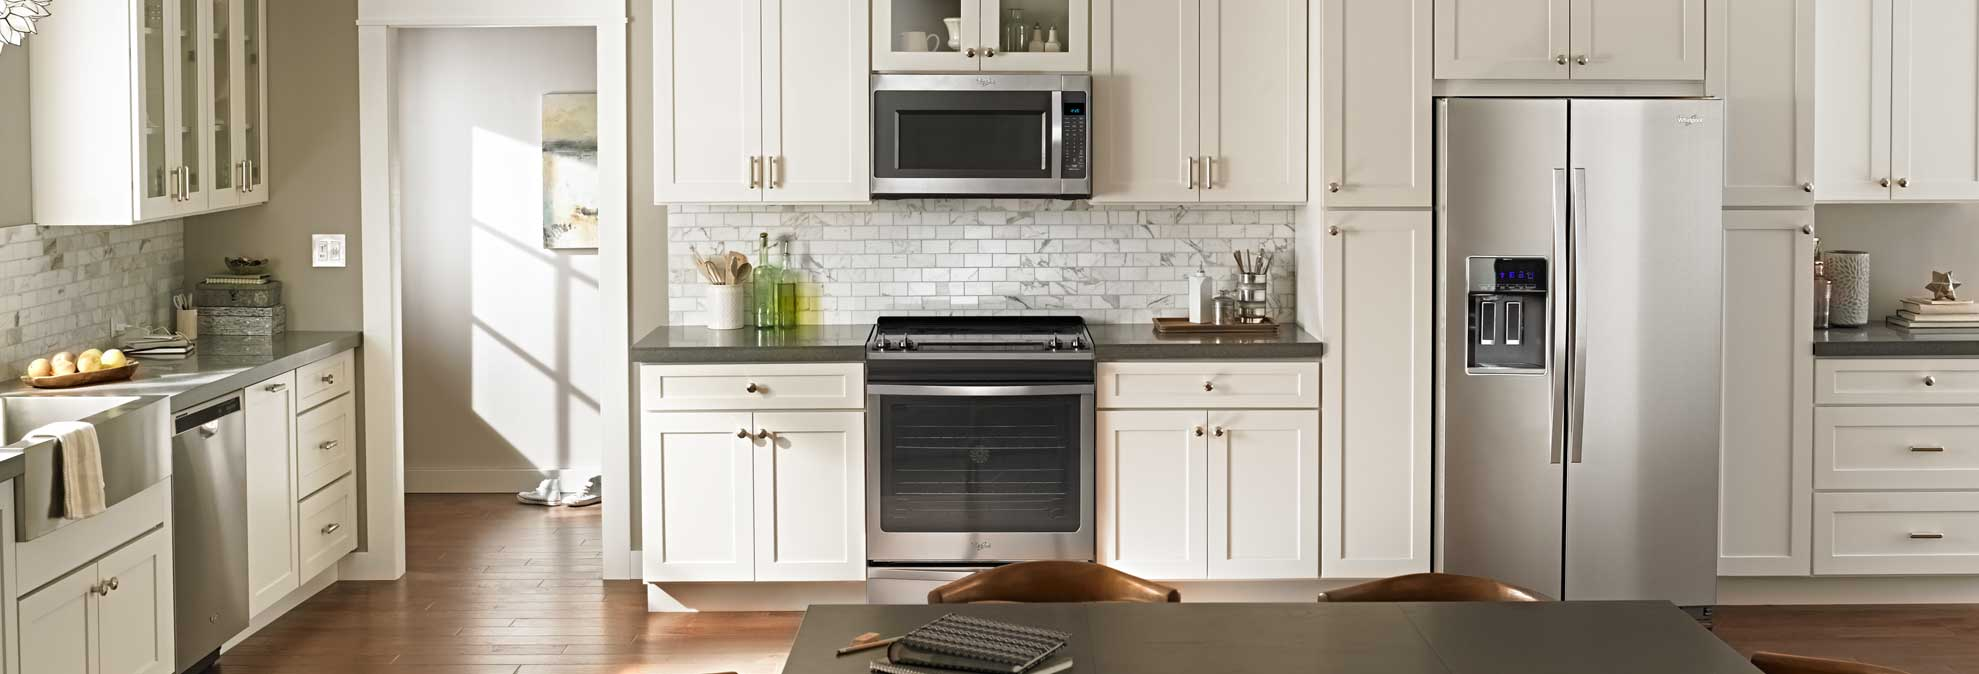 best kitchen appliances for the money showrooms nj a mid-range makeover $25k to $50k - consumer ...